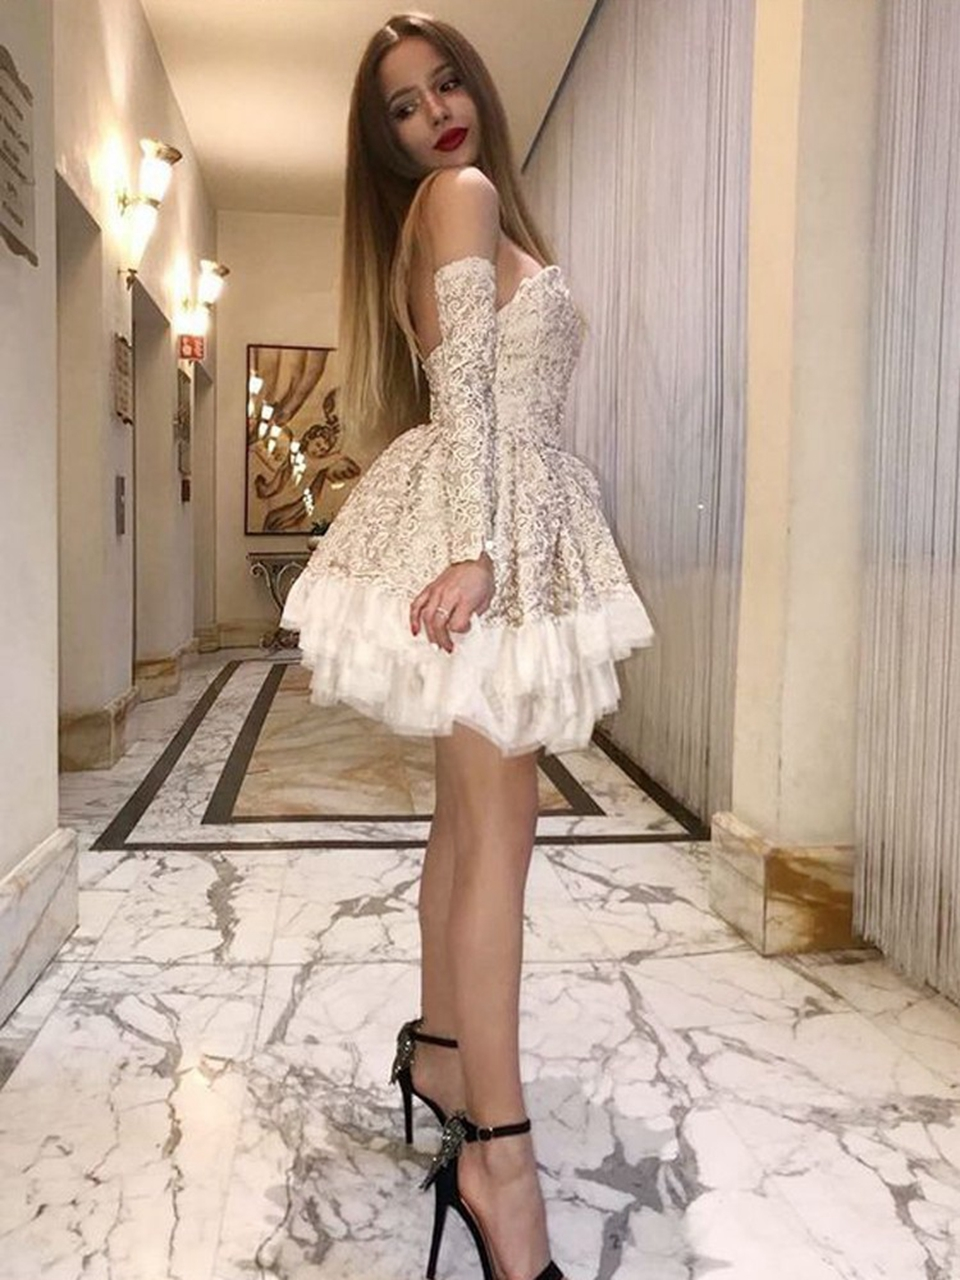 Champagne Cocktail Dresses 2020 Women Formal Party Short Prom Dress Off Shoulder Robe De Soiree Homecoming Gown Graduation Dress